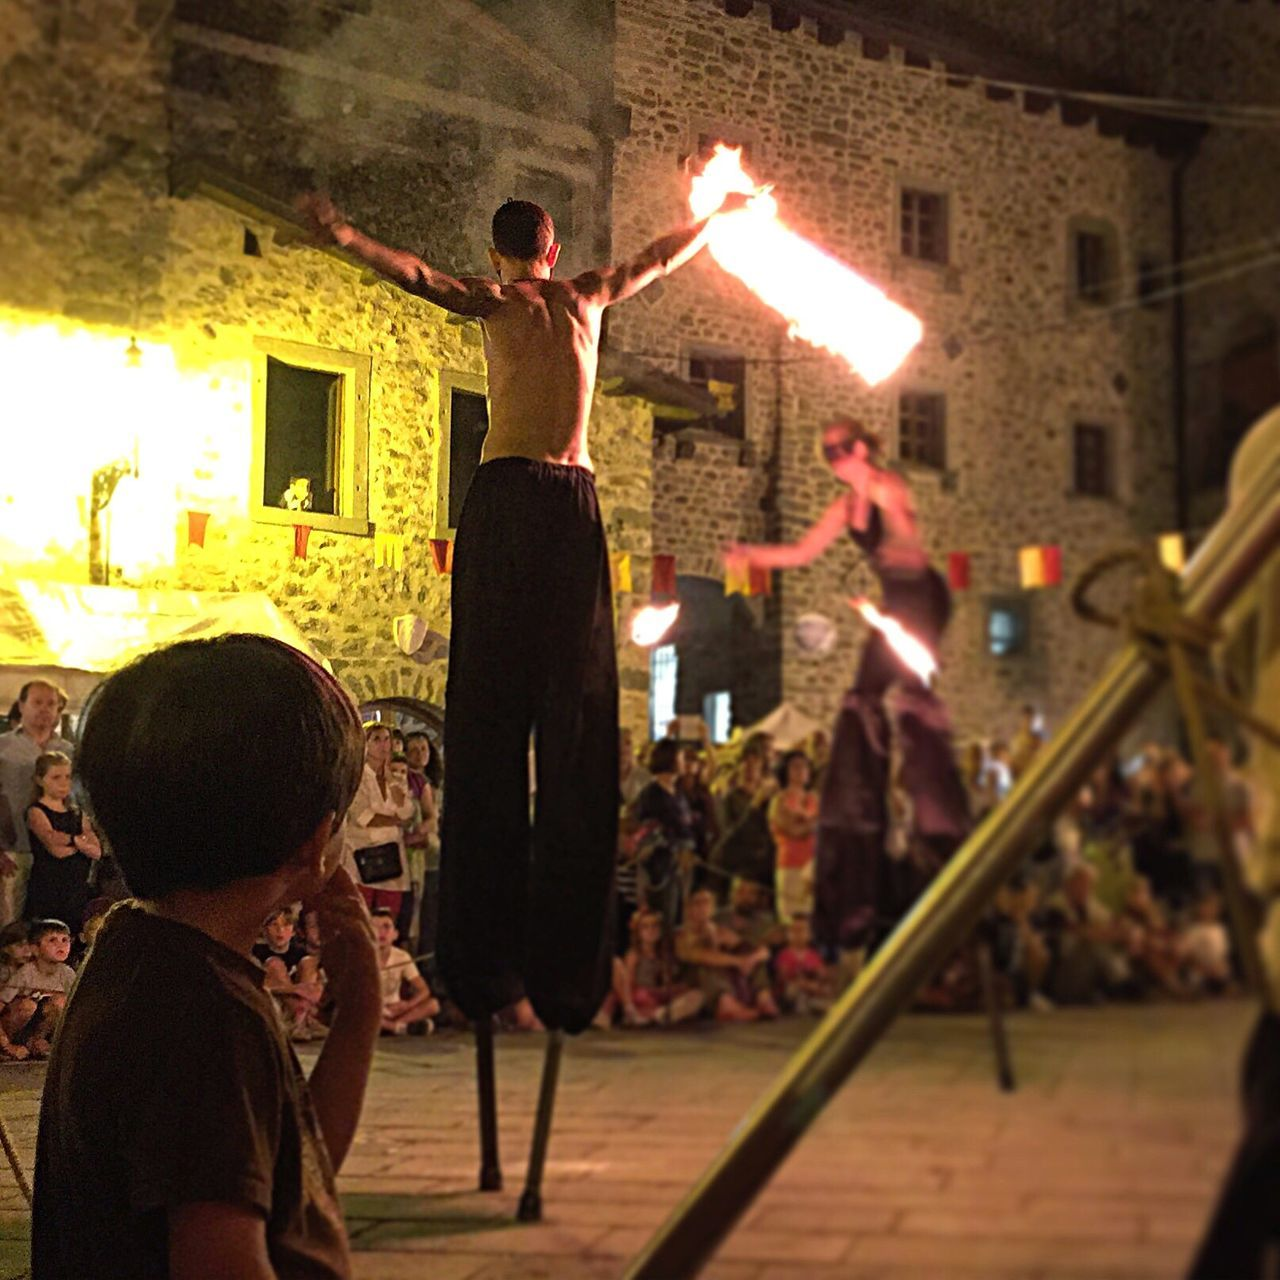 Real People Arms Raised Architecture Built Structure Building Exterior Fire Artists Fire Night Illuminated Lifestyles Child Human Body Part Outdoors City People Festival Festa Filetto Tuscany Italy Art Is Everywhere The Street Photographer - 2017 EyeEm Awards The Architect - 2017 EyeEm Awards